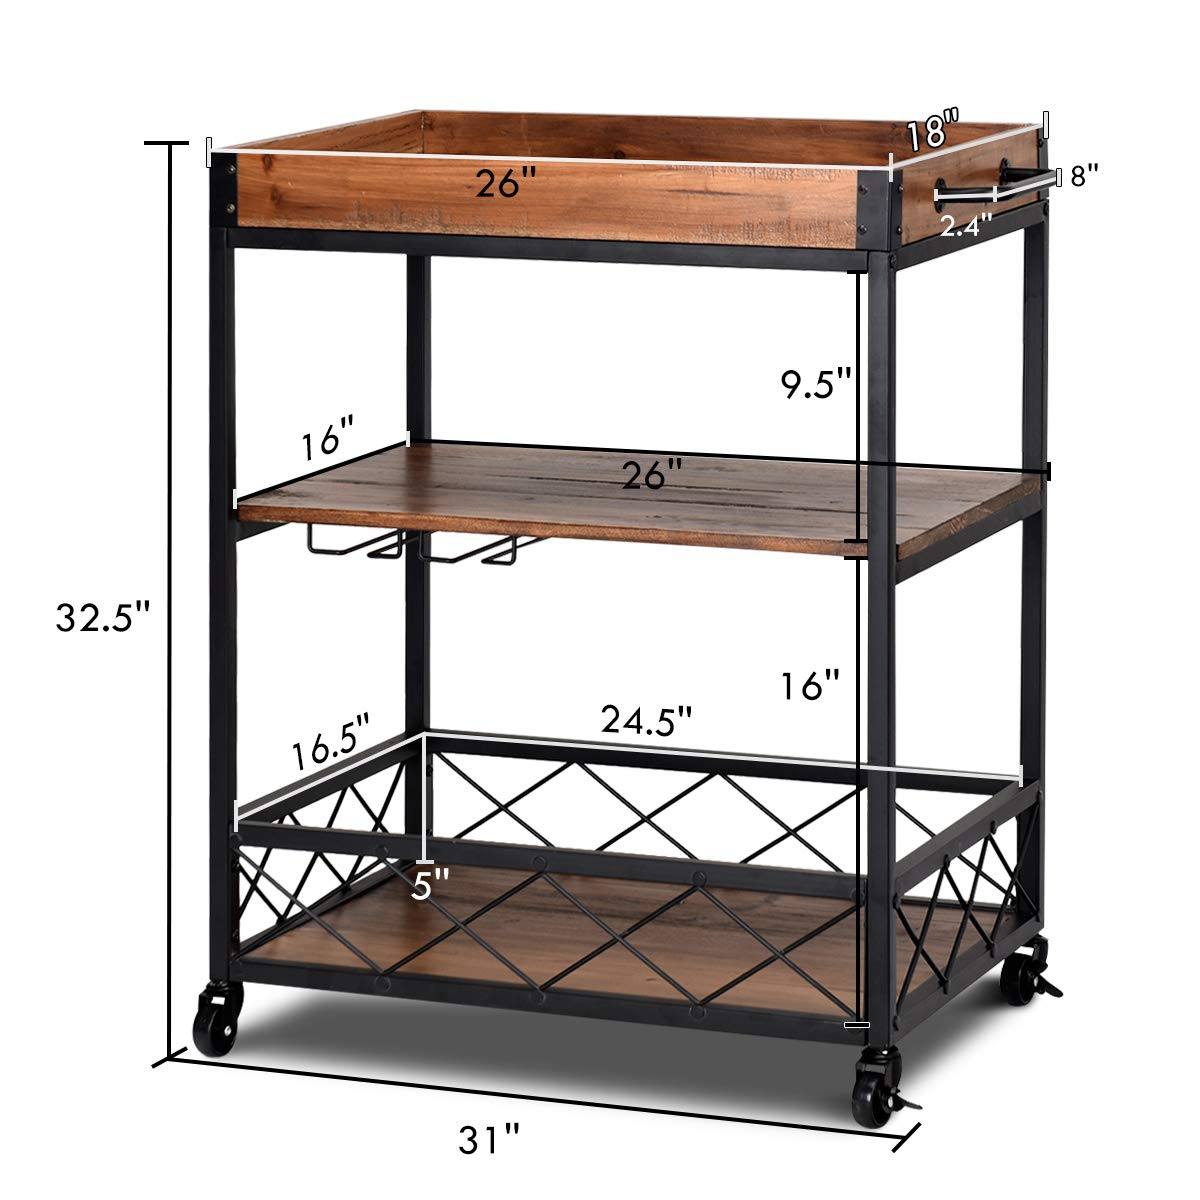 Giantex Kitchen Trolley Cart Island Rolling Serving Carts Utility Cart 3 Tier Storage Shelf with Glass Holde, Handle Racks, Lockable Caster Wheels Kitchen Carts Islands w/Removable Wood Box Container by Giantex (Image #8)